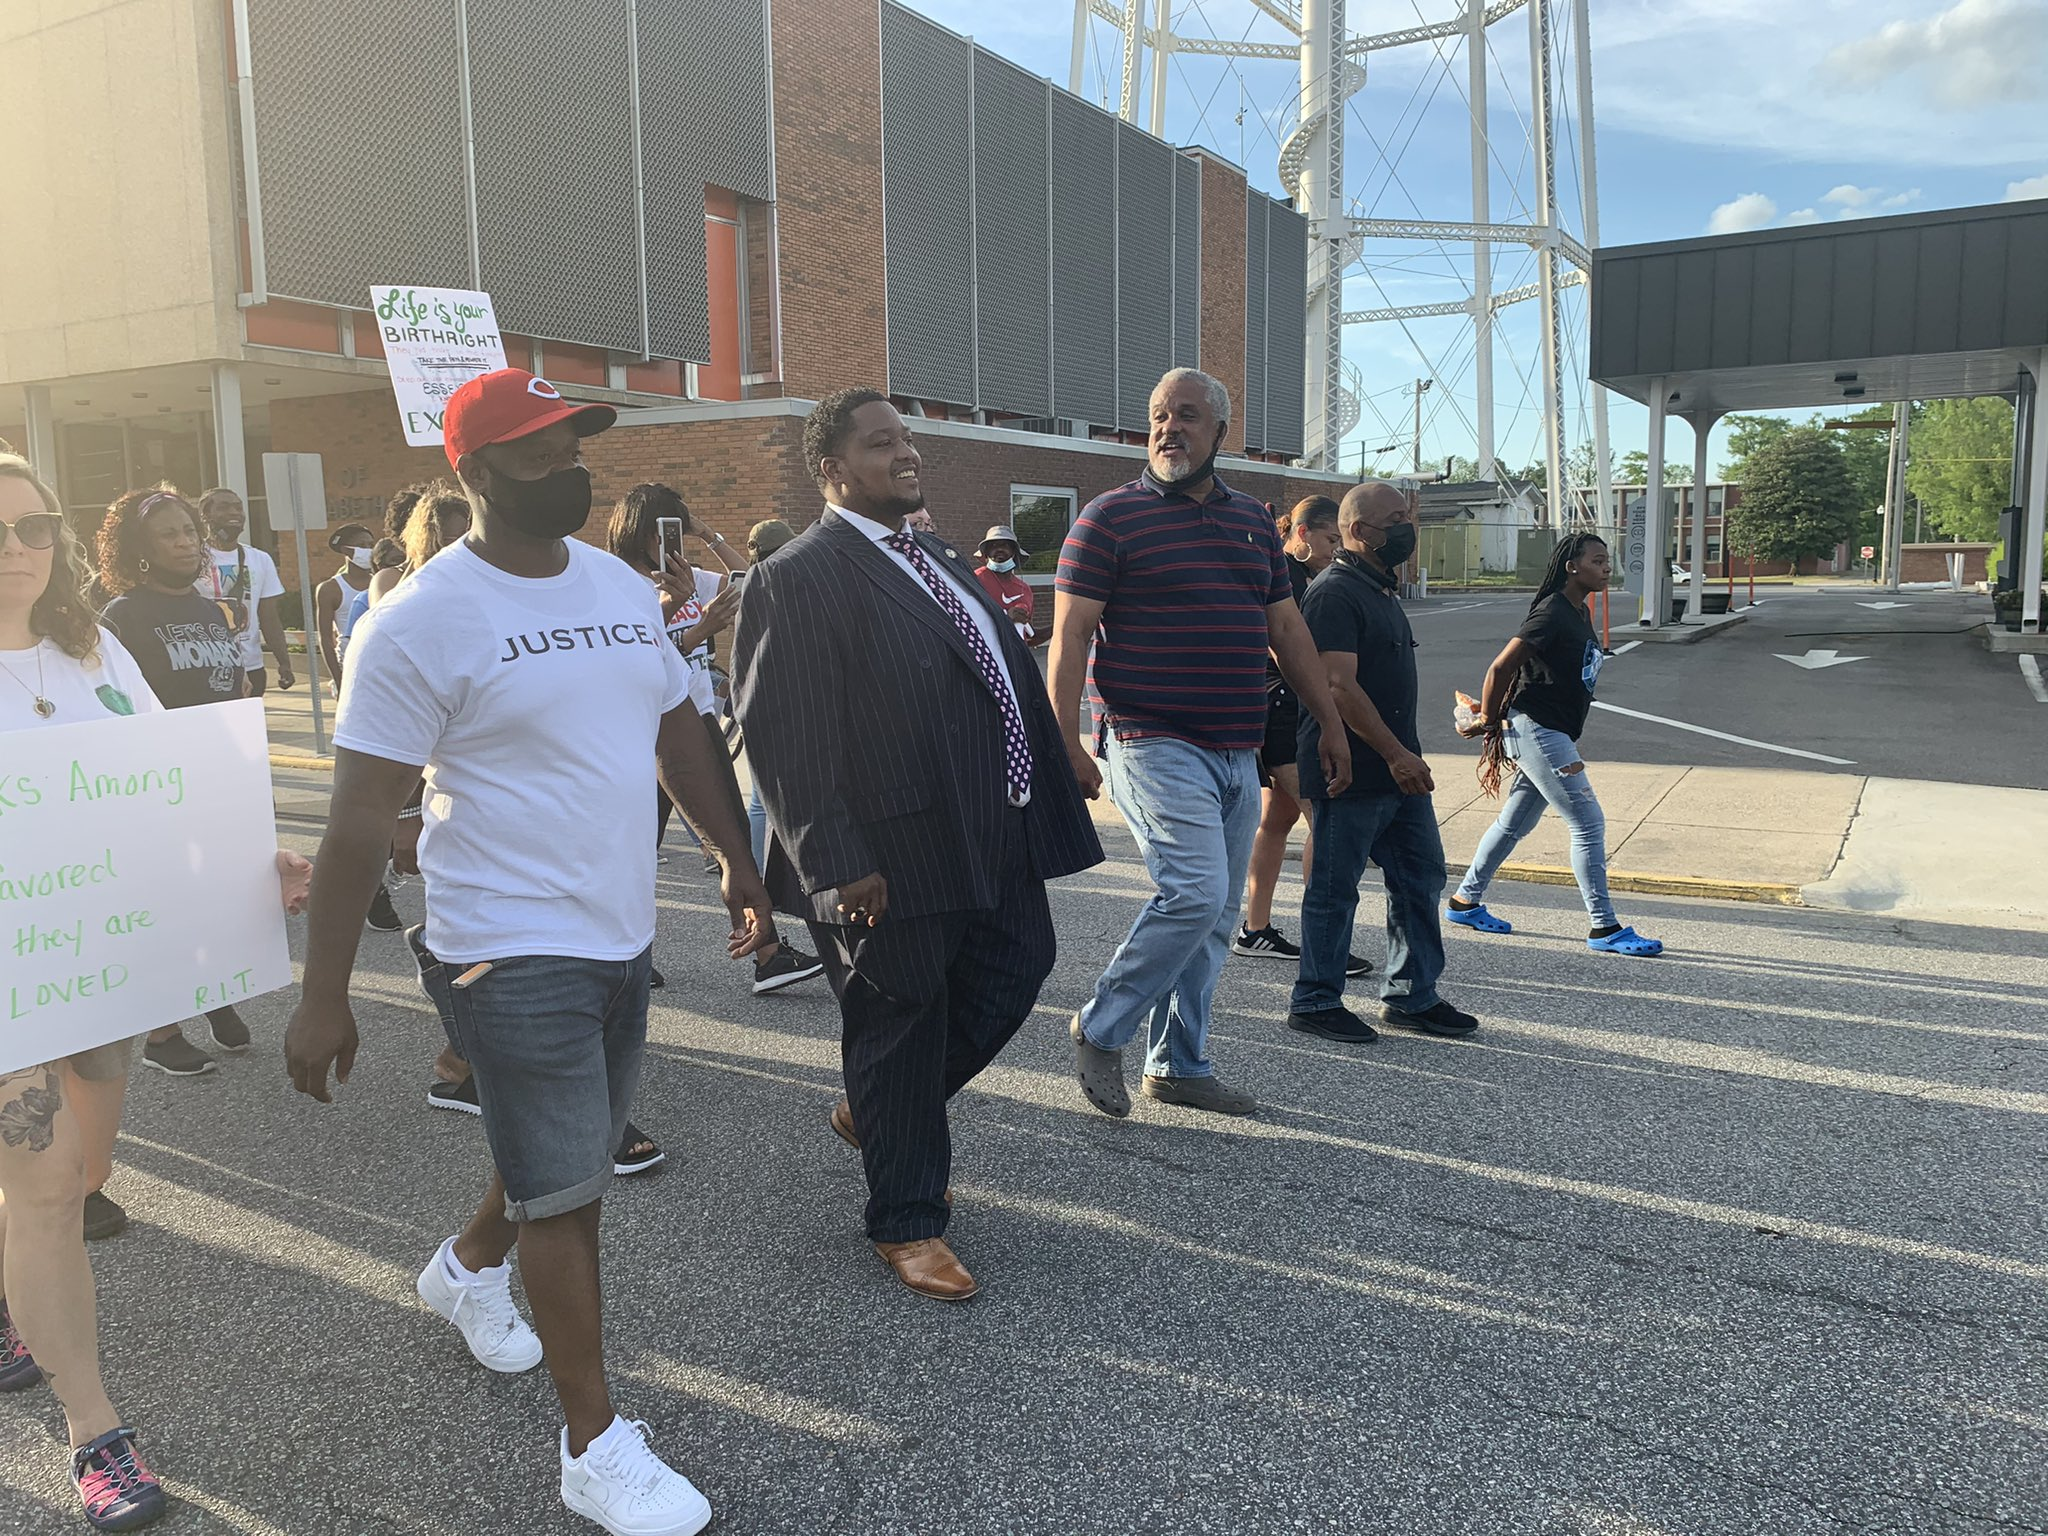 Dozens of Elizabeth City Protesters Demand Justice for Andrew Brown